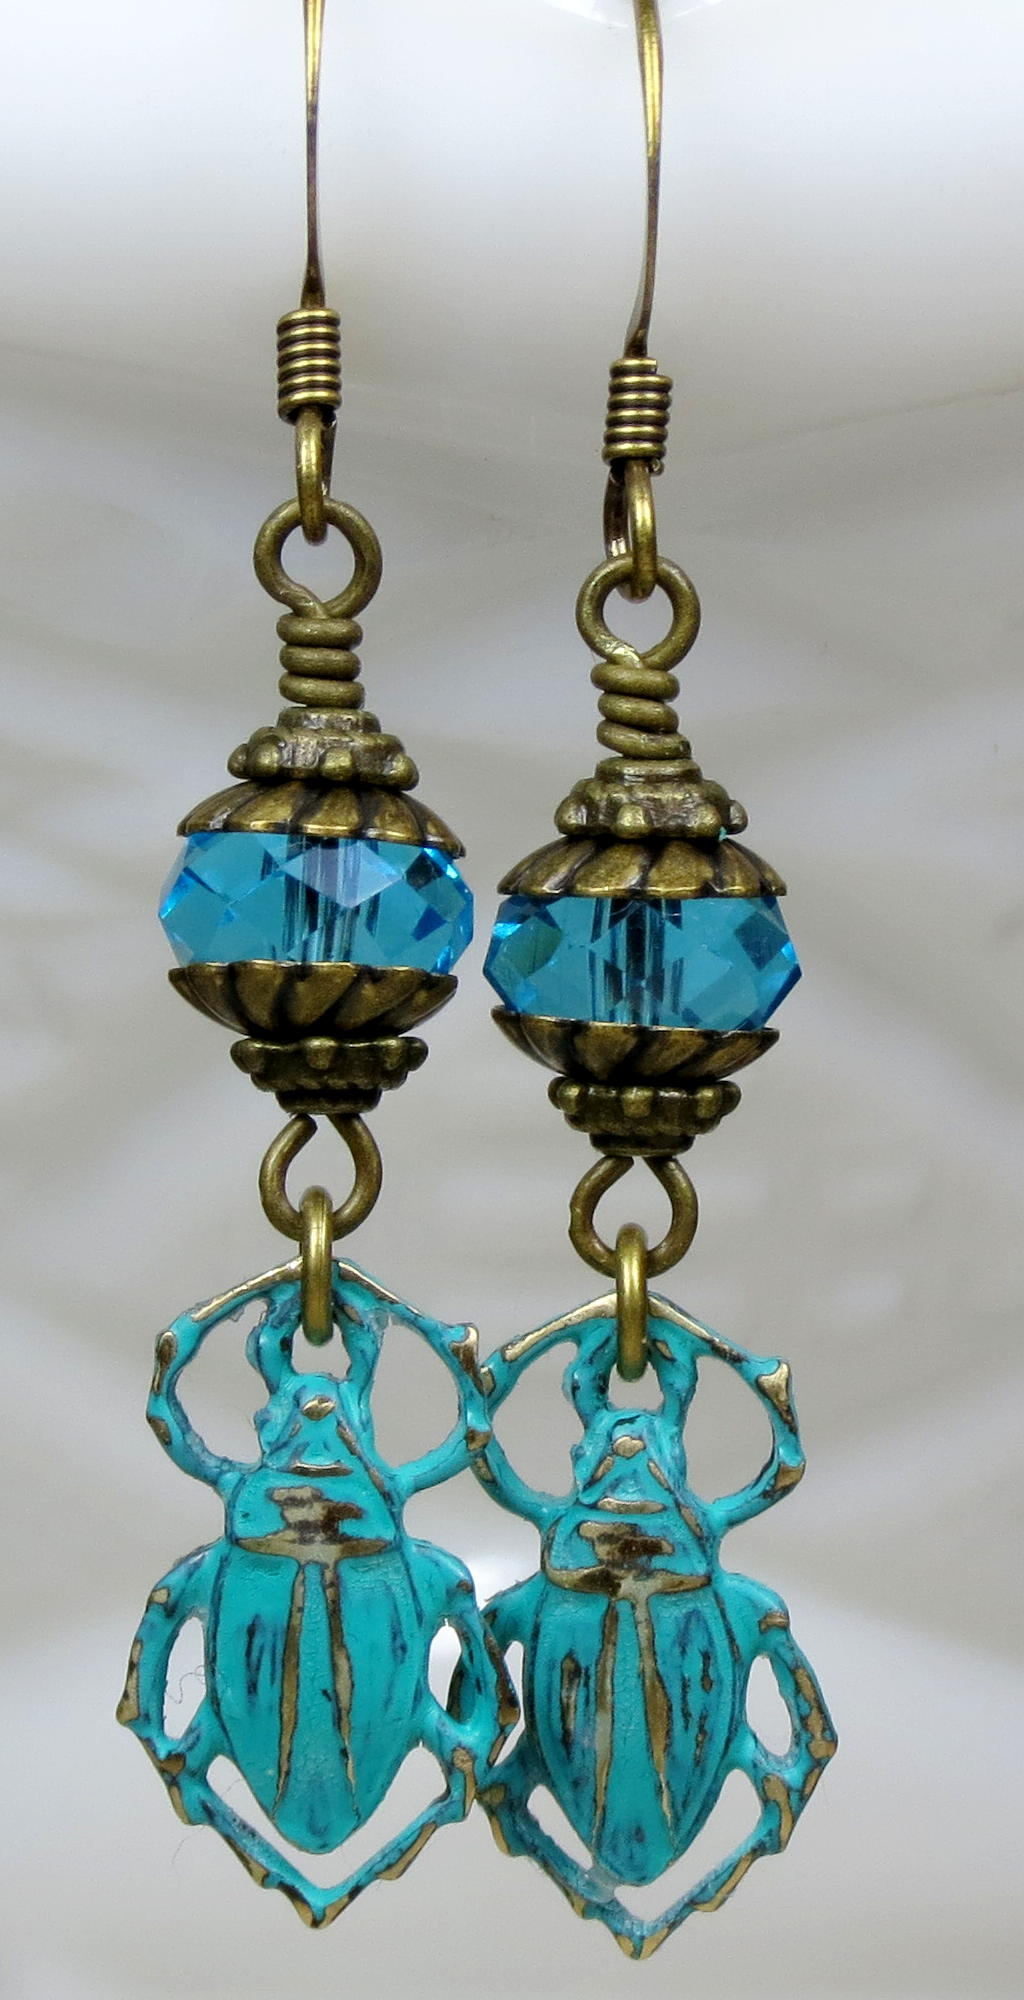 Unique Blue Patina Egyptian Scarab Beetle and Crystal Beaded Dangle Earrings, Egyptian Inspired Jewelry would make a perfect gift or something special and unique for yourself.